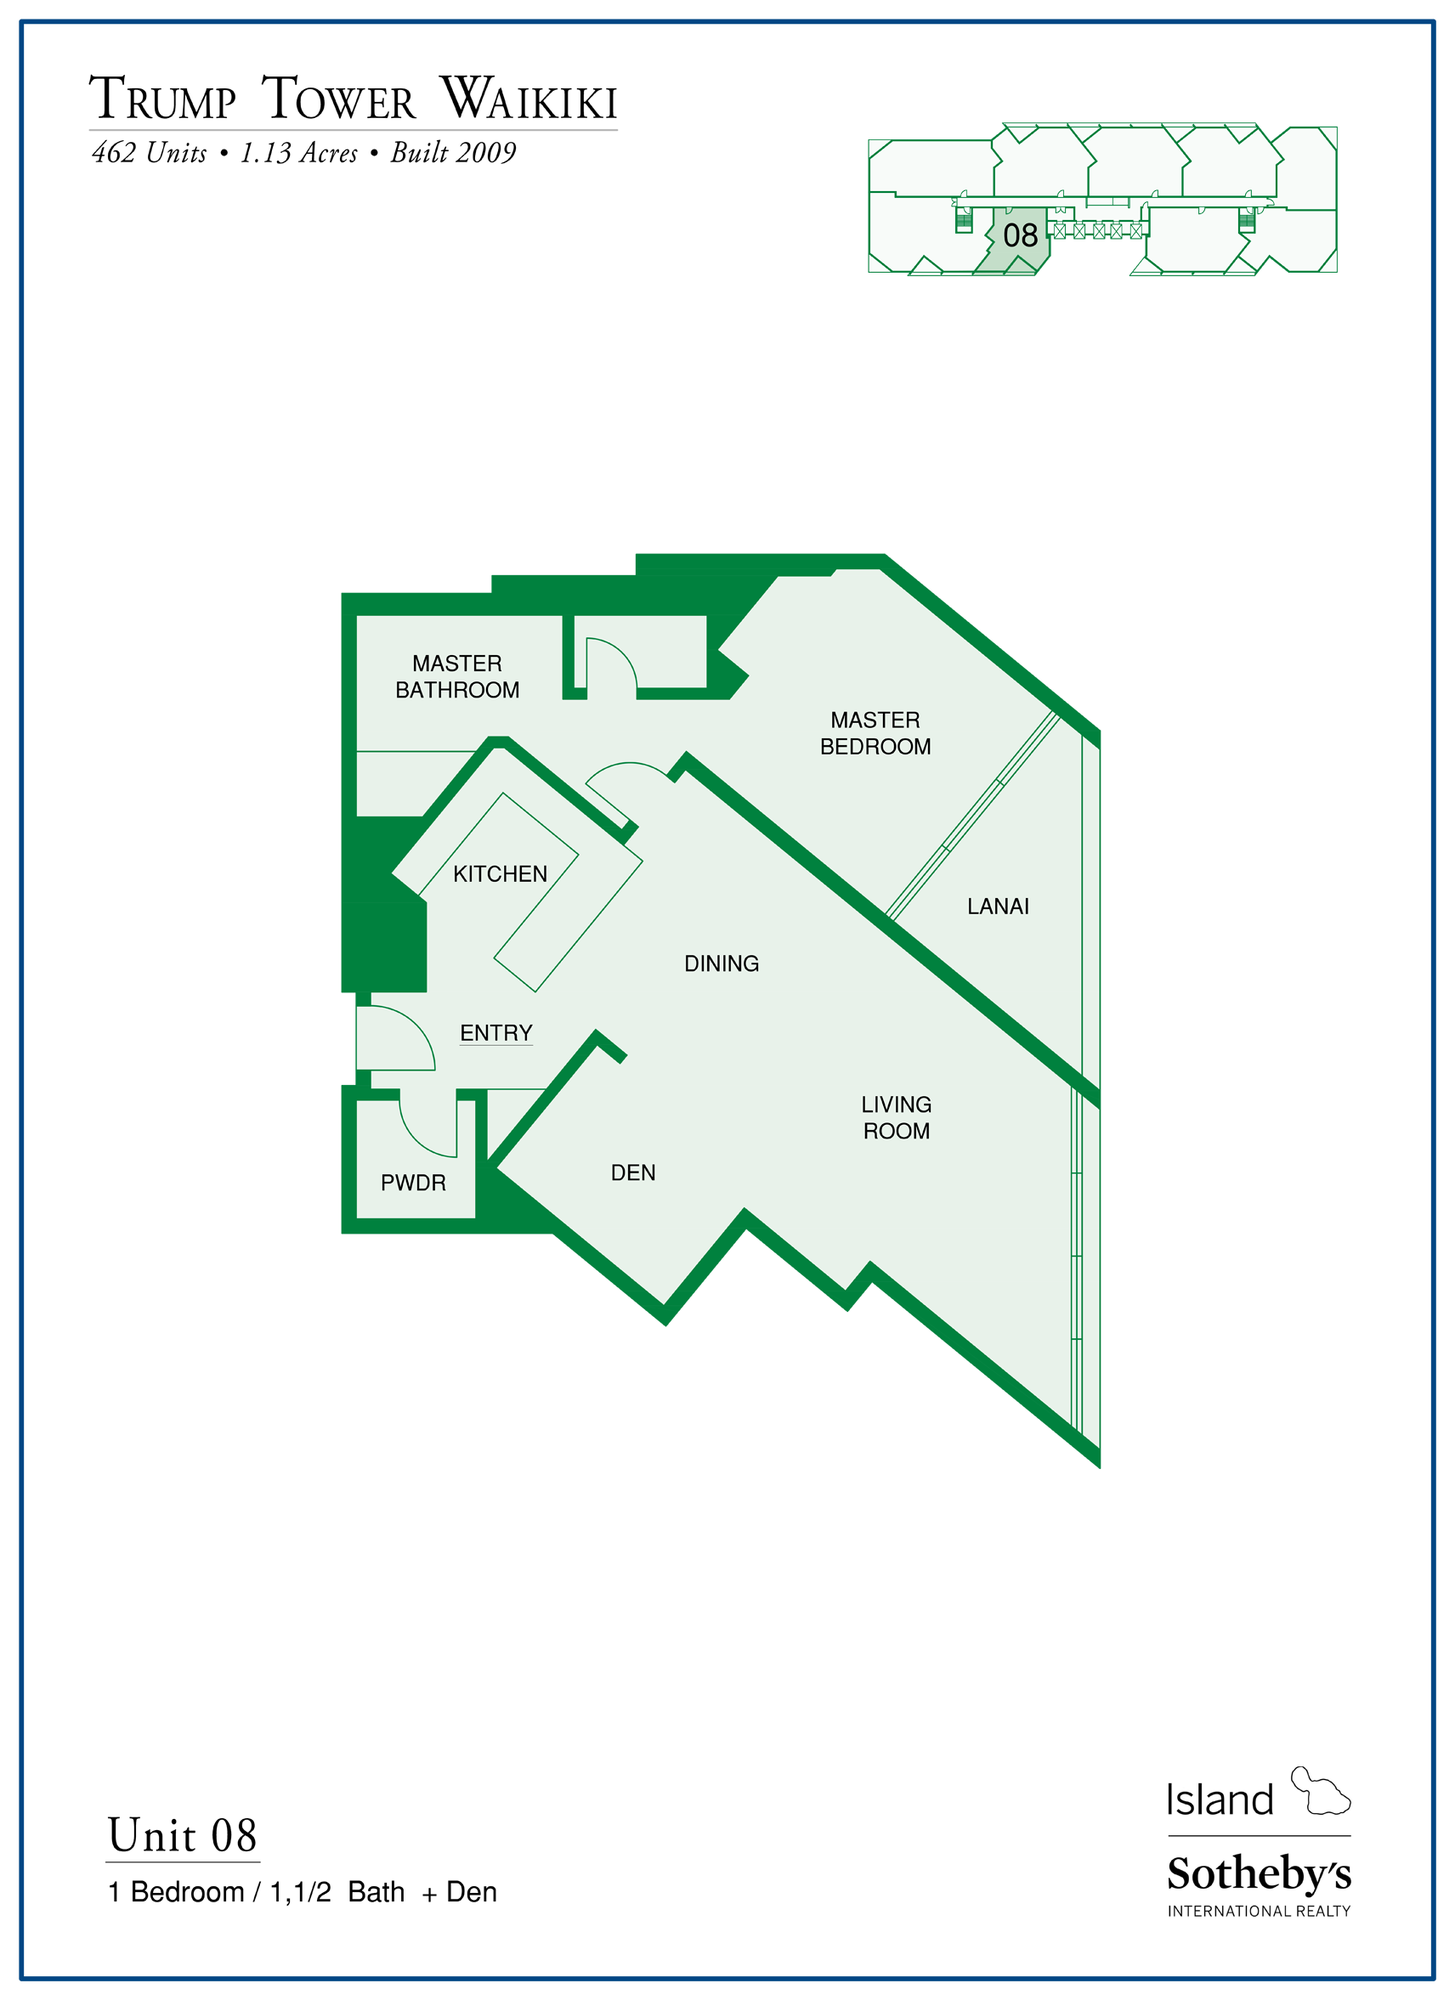 Trump Tower Waikiki Floor Plan Stack 08